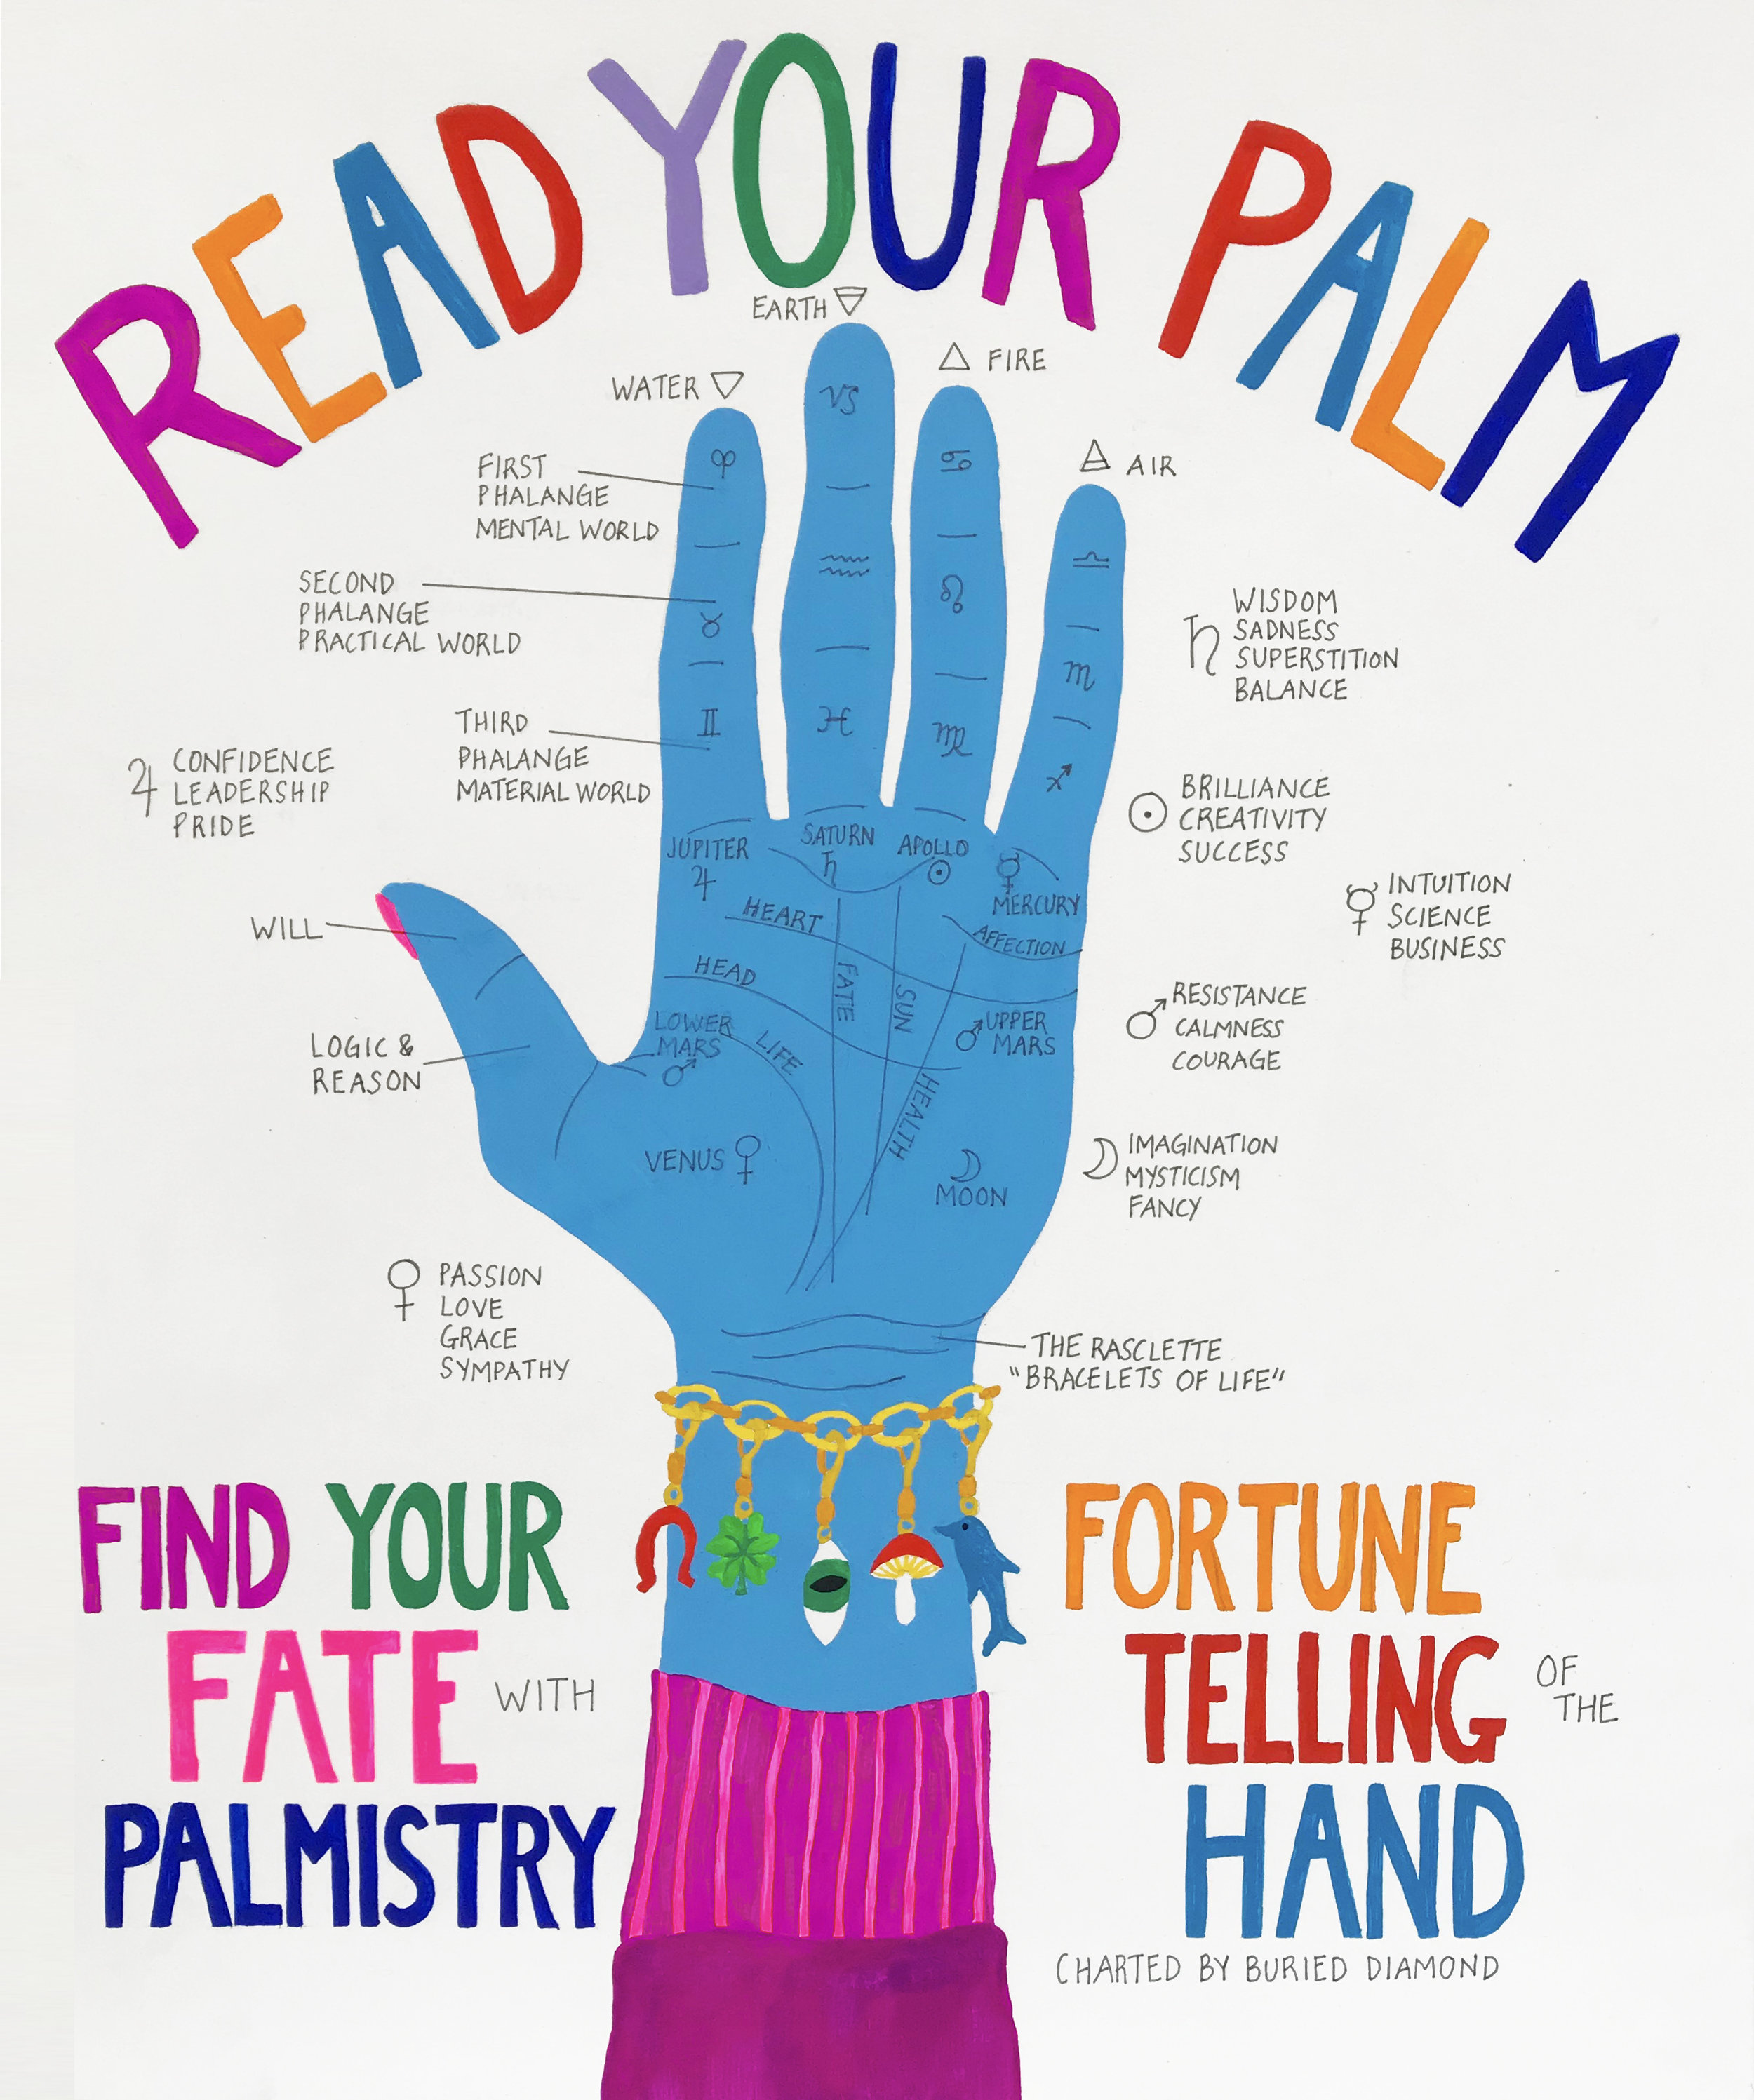 5 read your palm.jpg